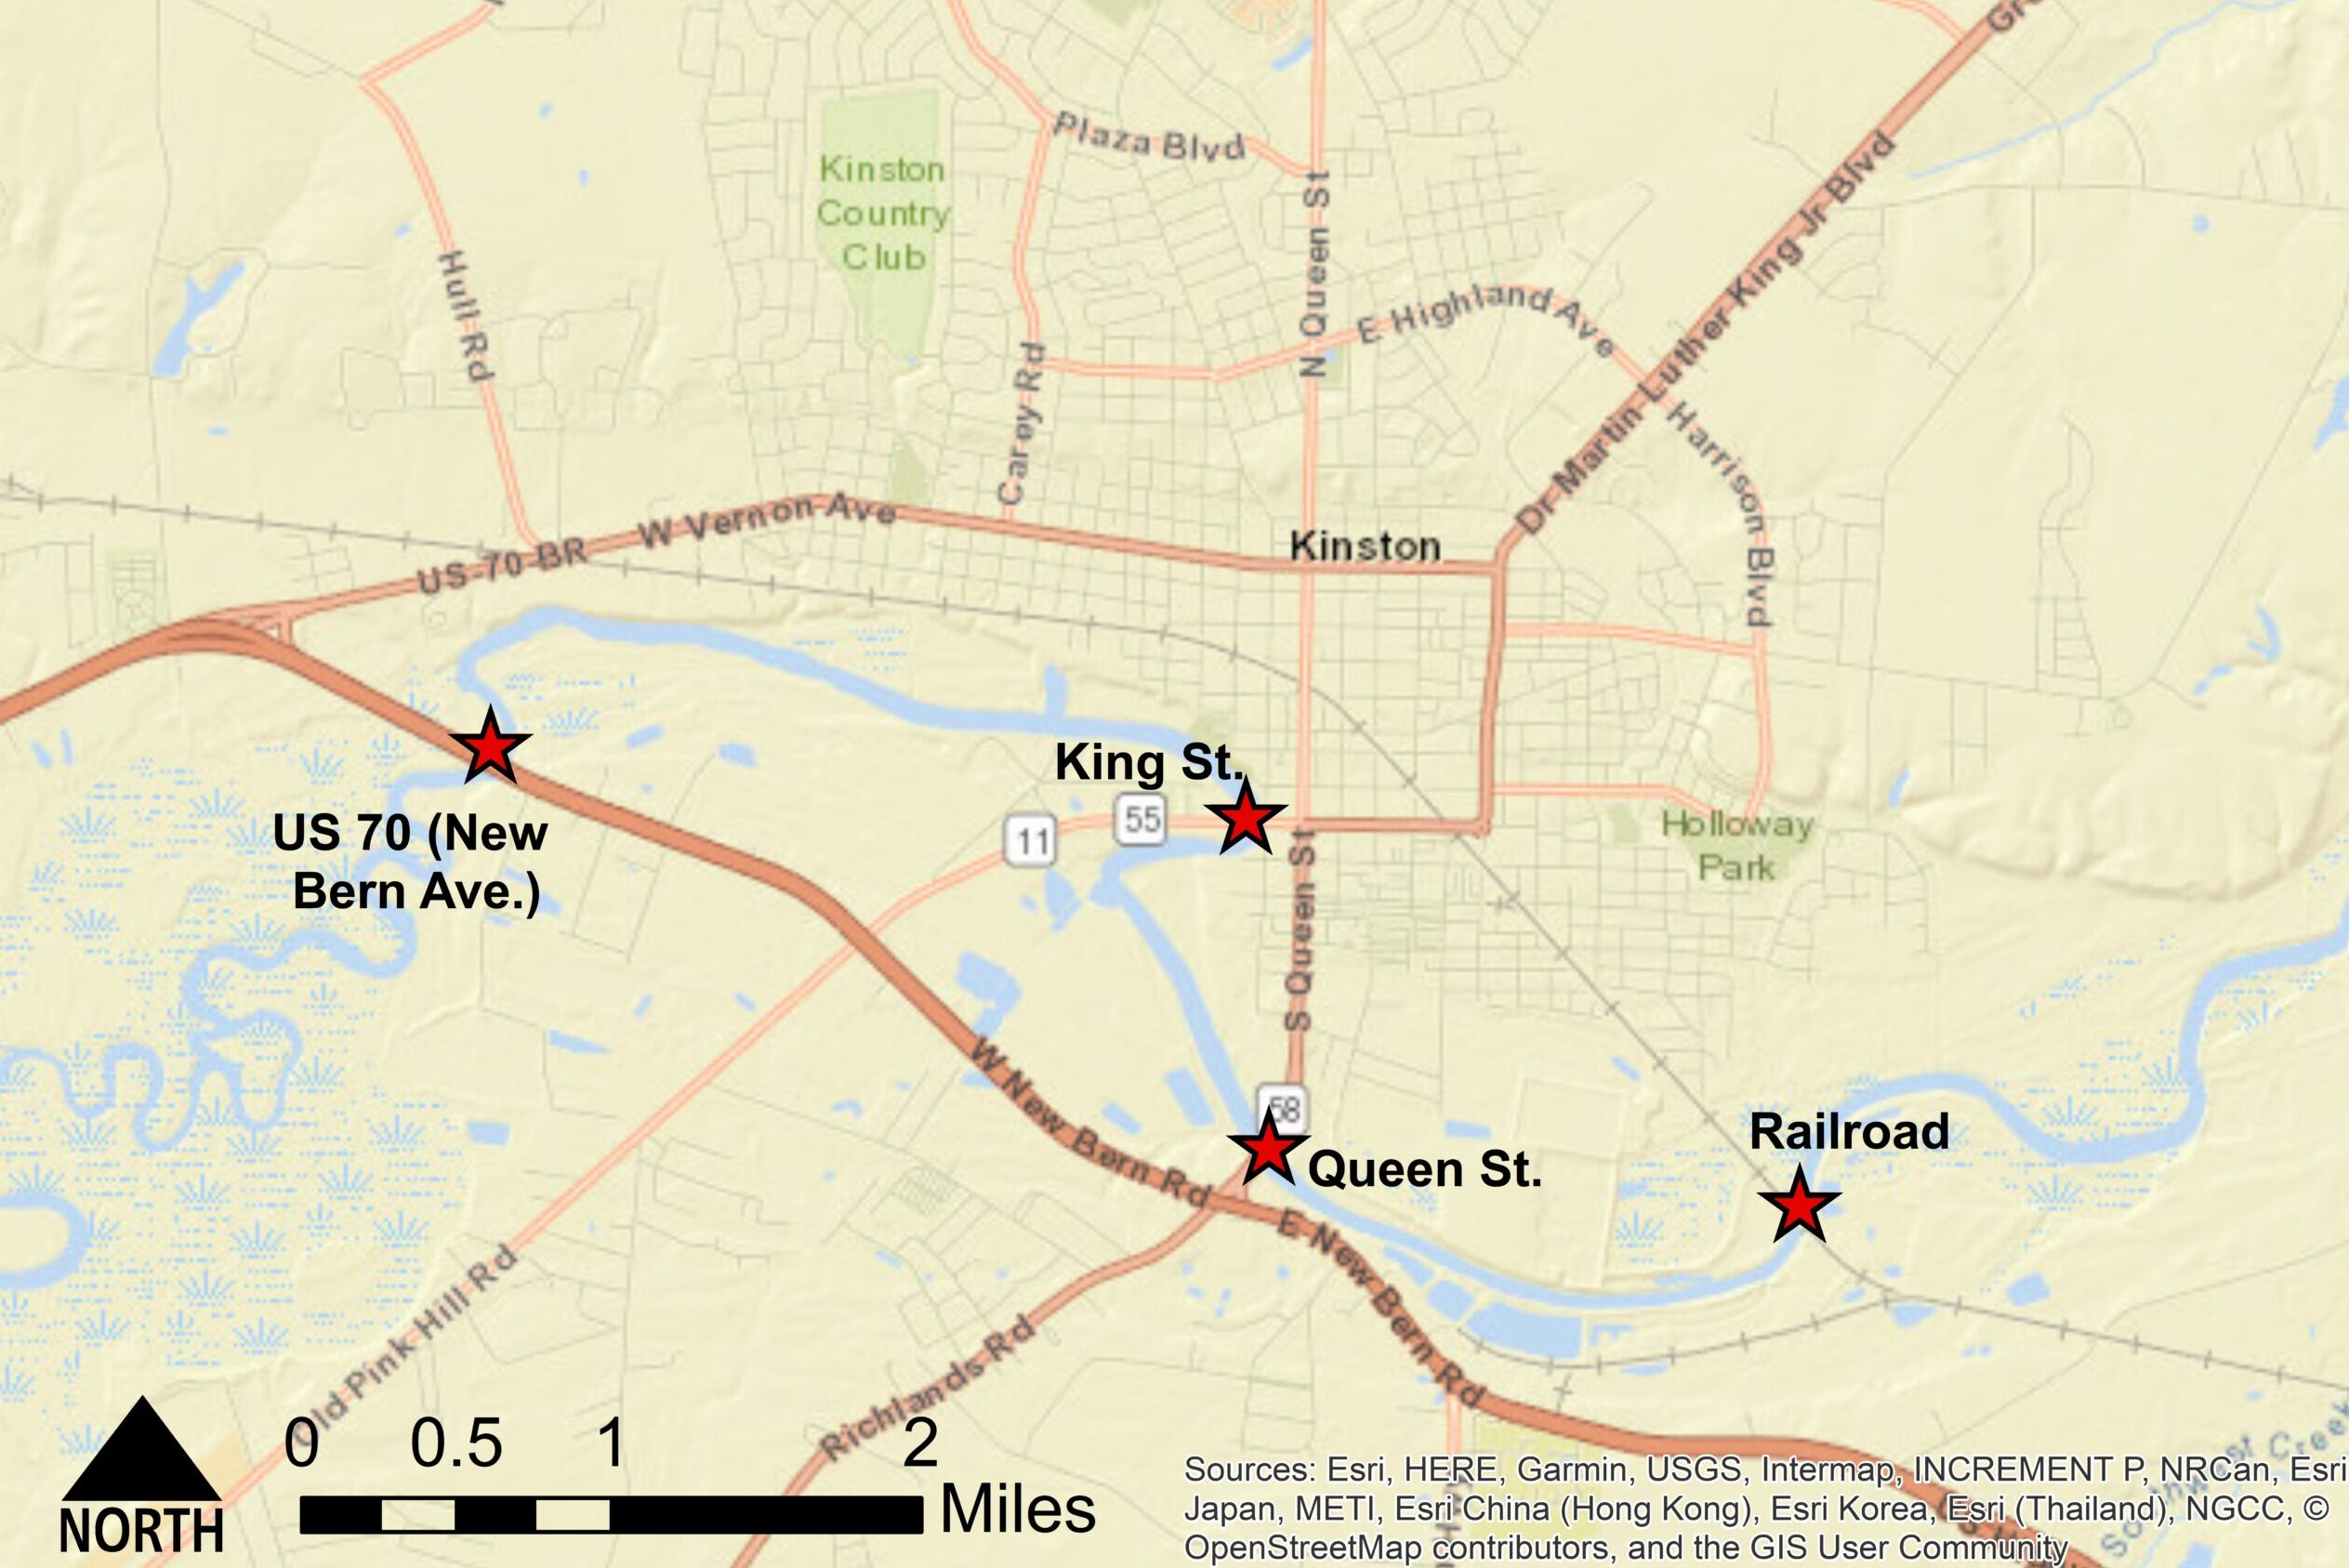 Street map of Kinston bridges investigated in the modeling study.